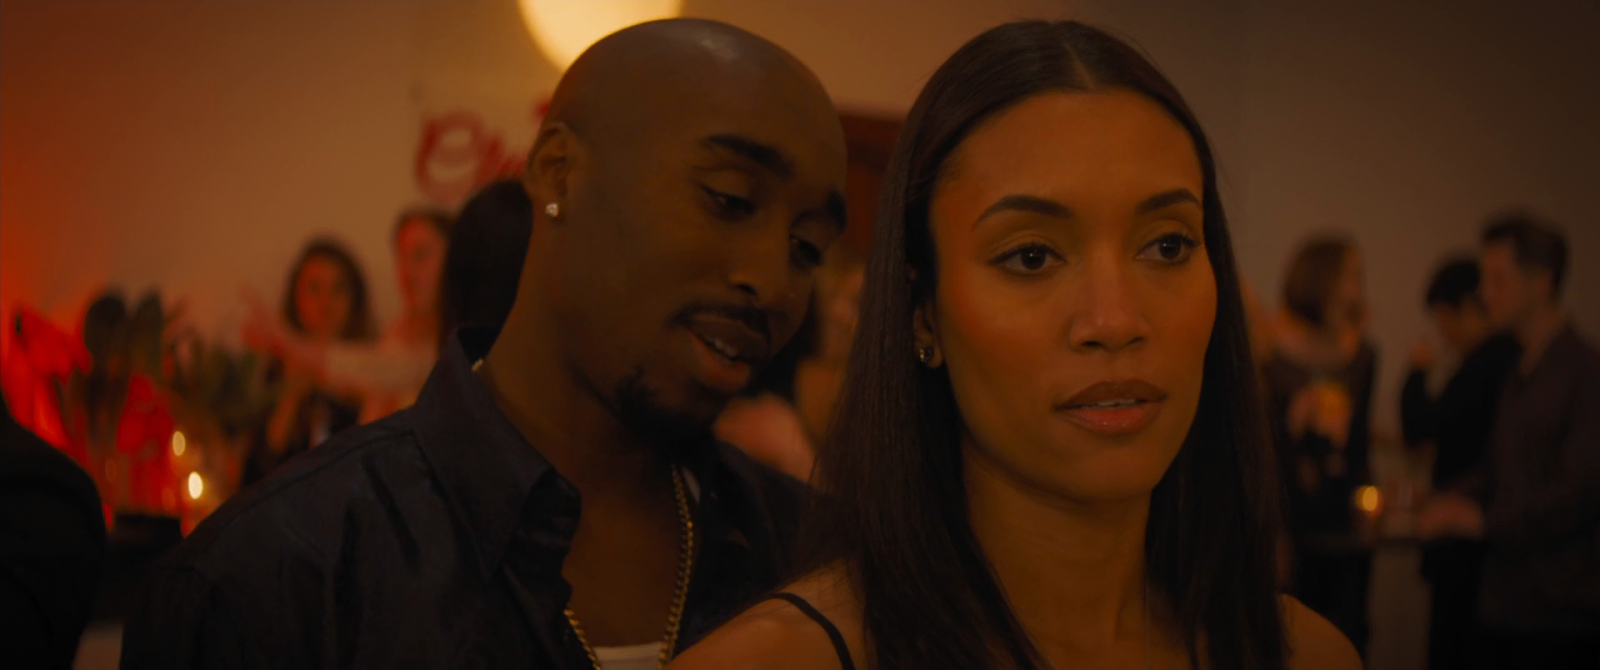 All Eyez on Me (2017) BRRip 1080p Latino-Ingles captura 3